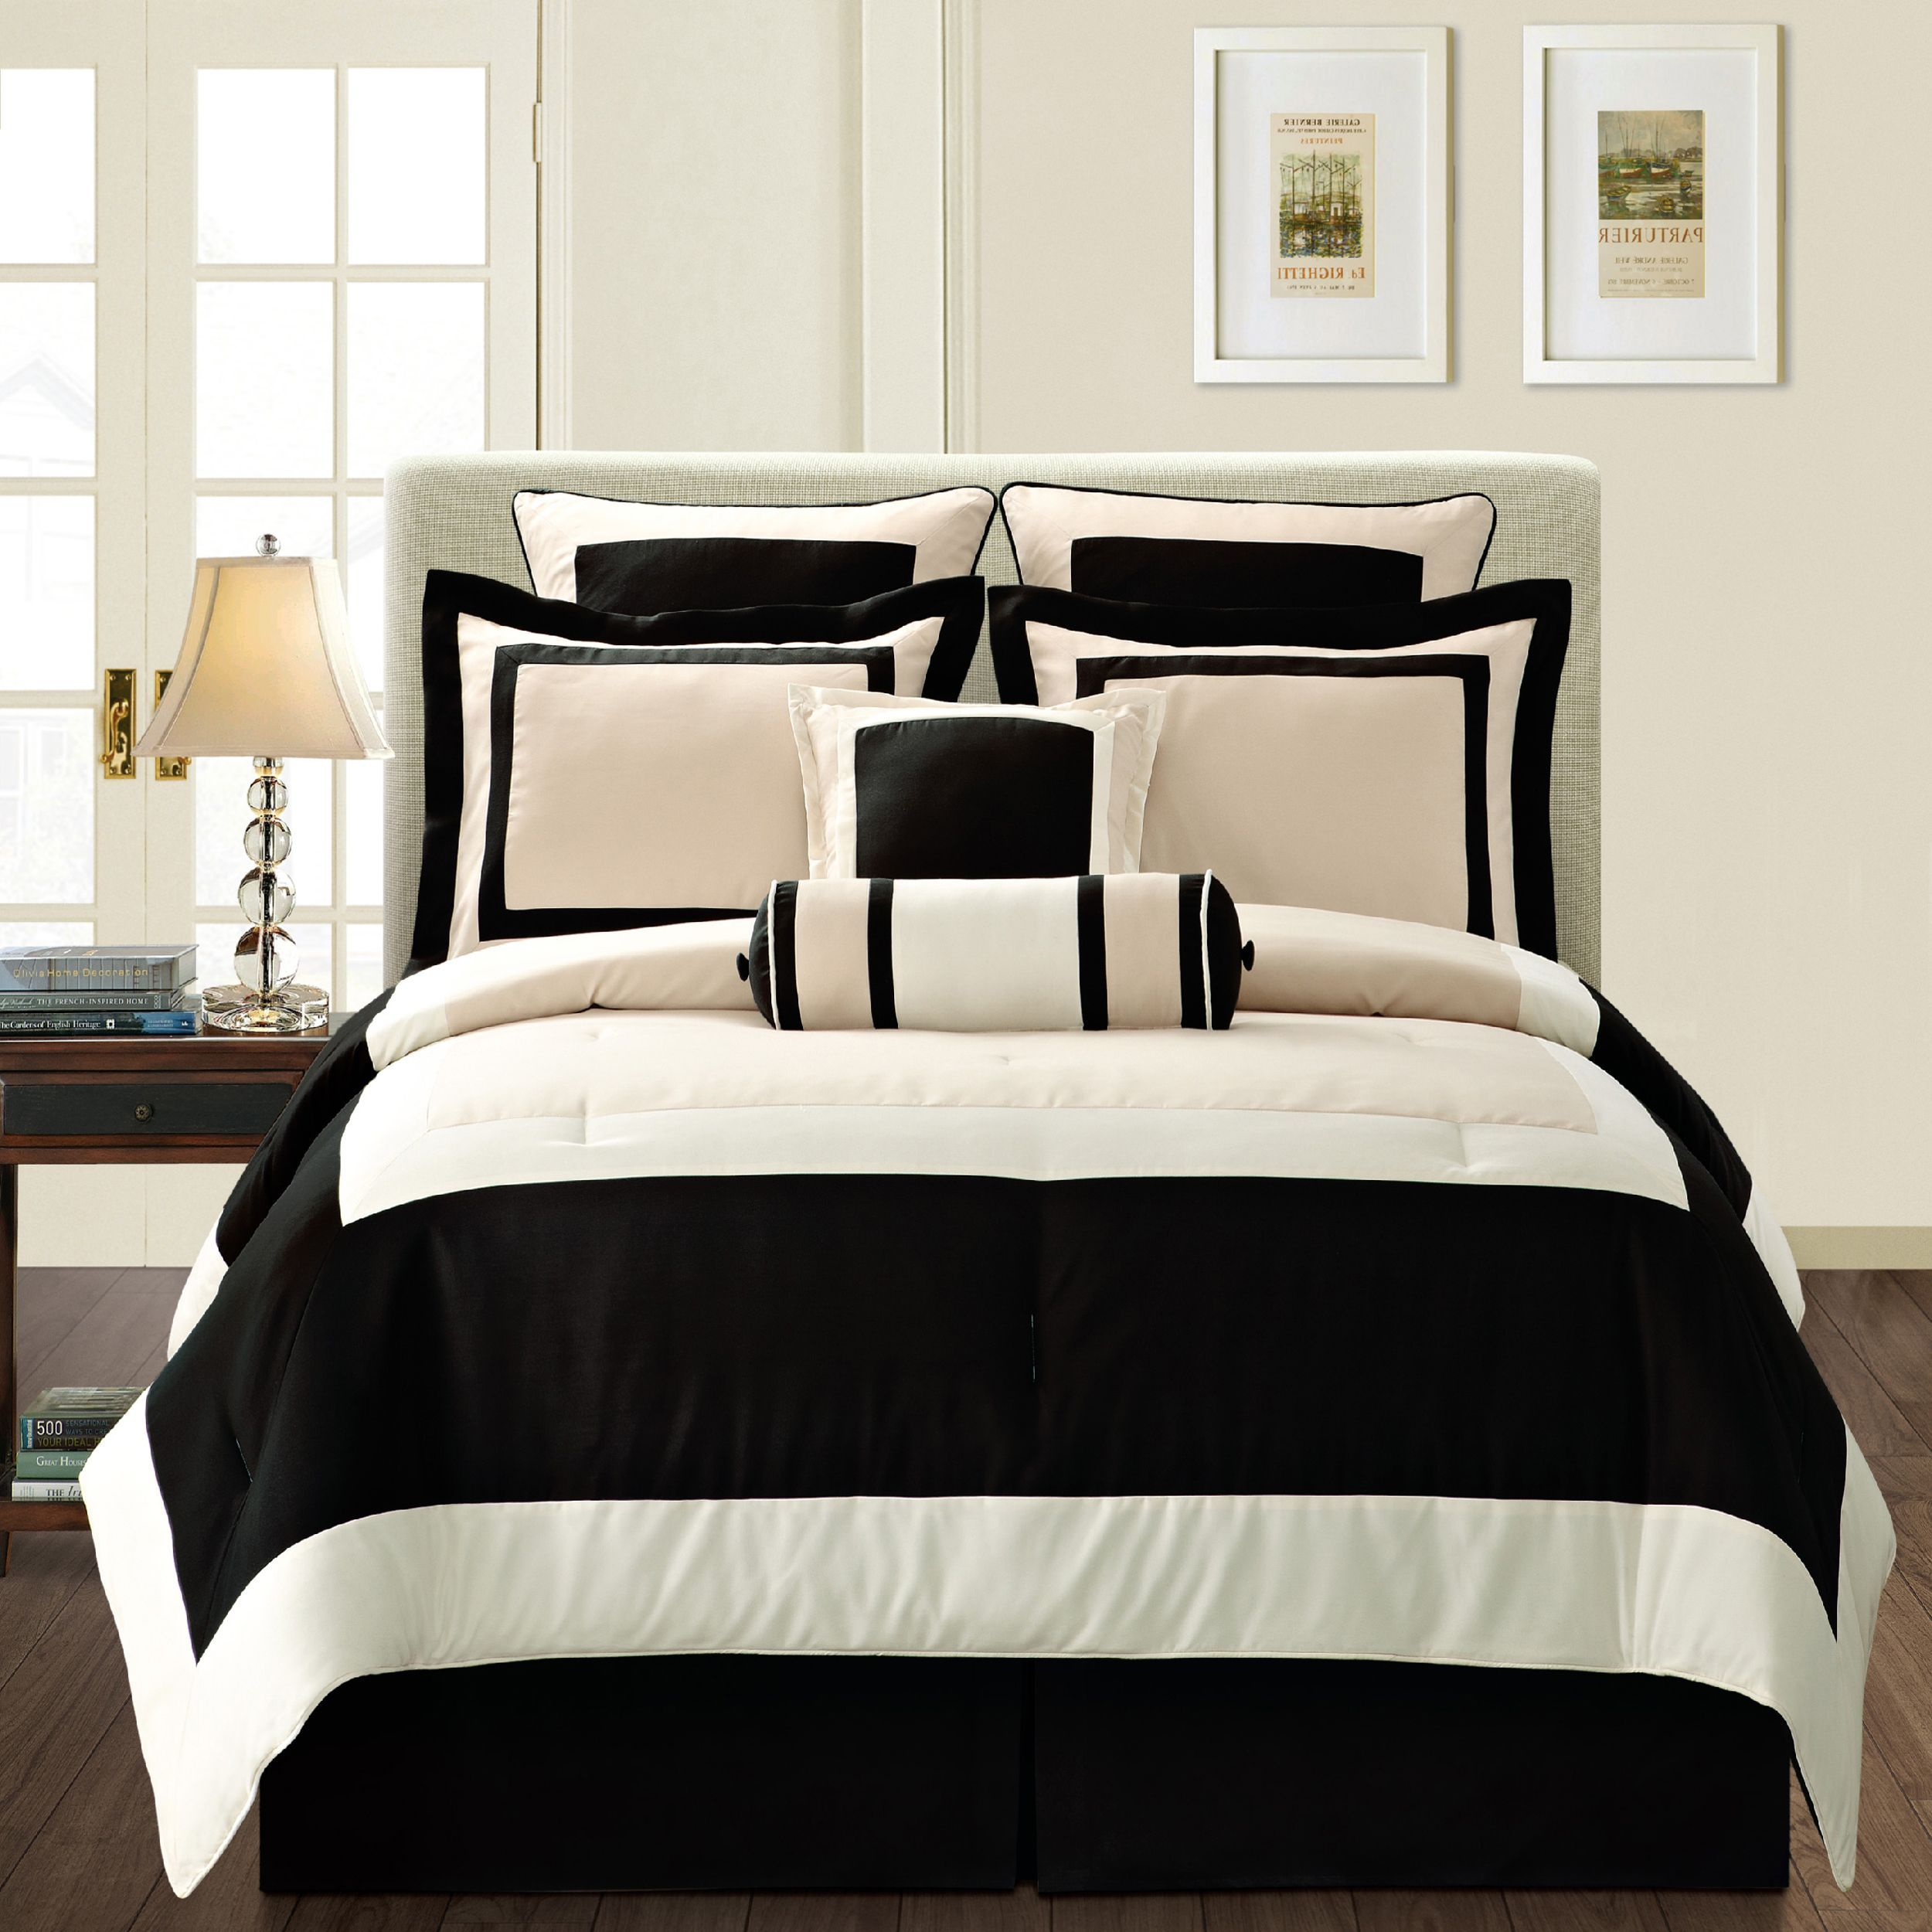 Gramercy Queensize 12 Piece Black Bed in a Bag with Sheet Set